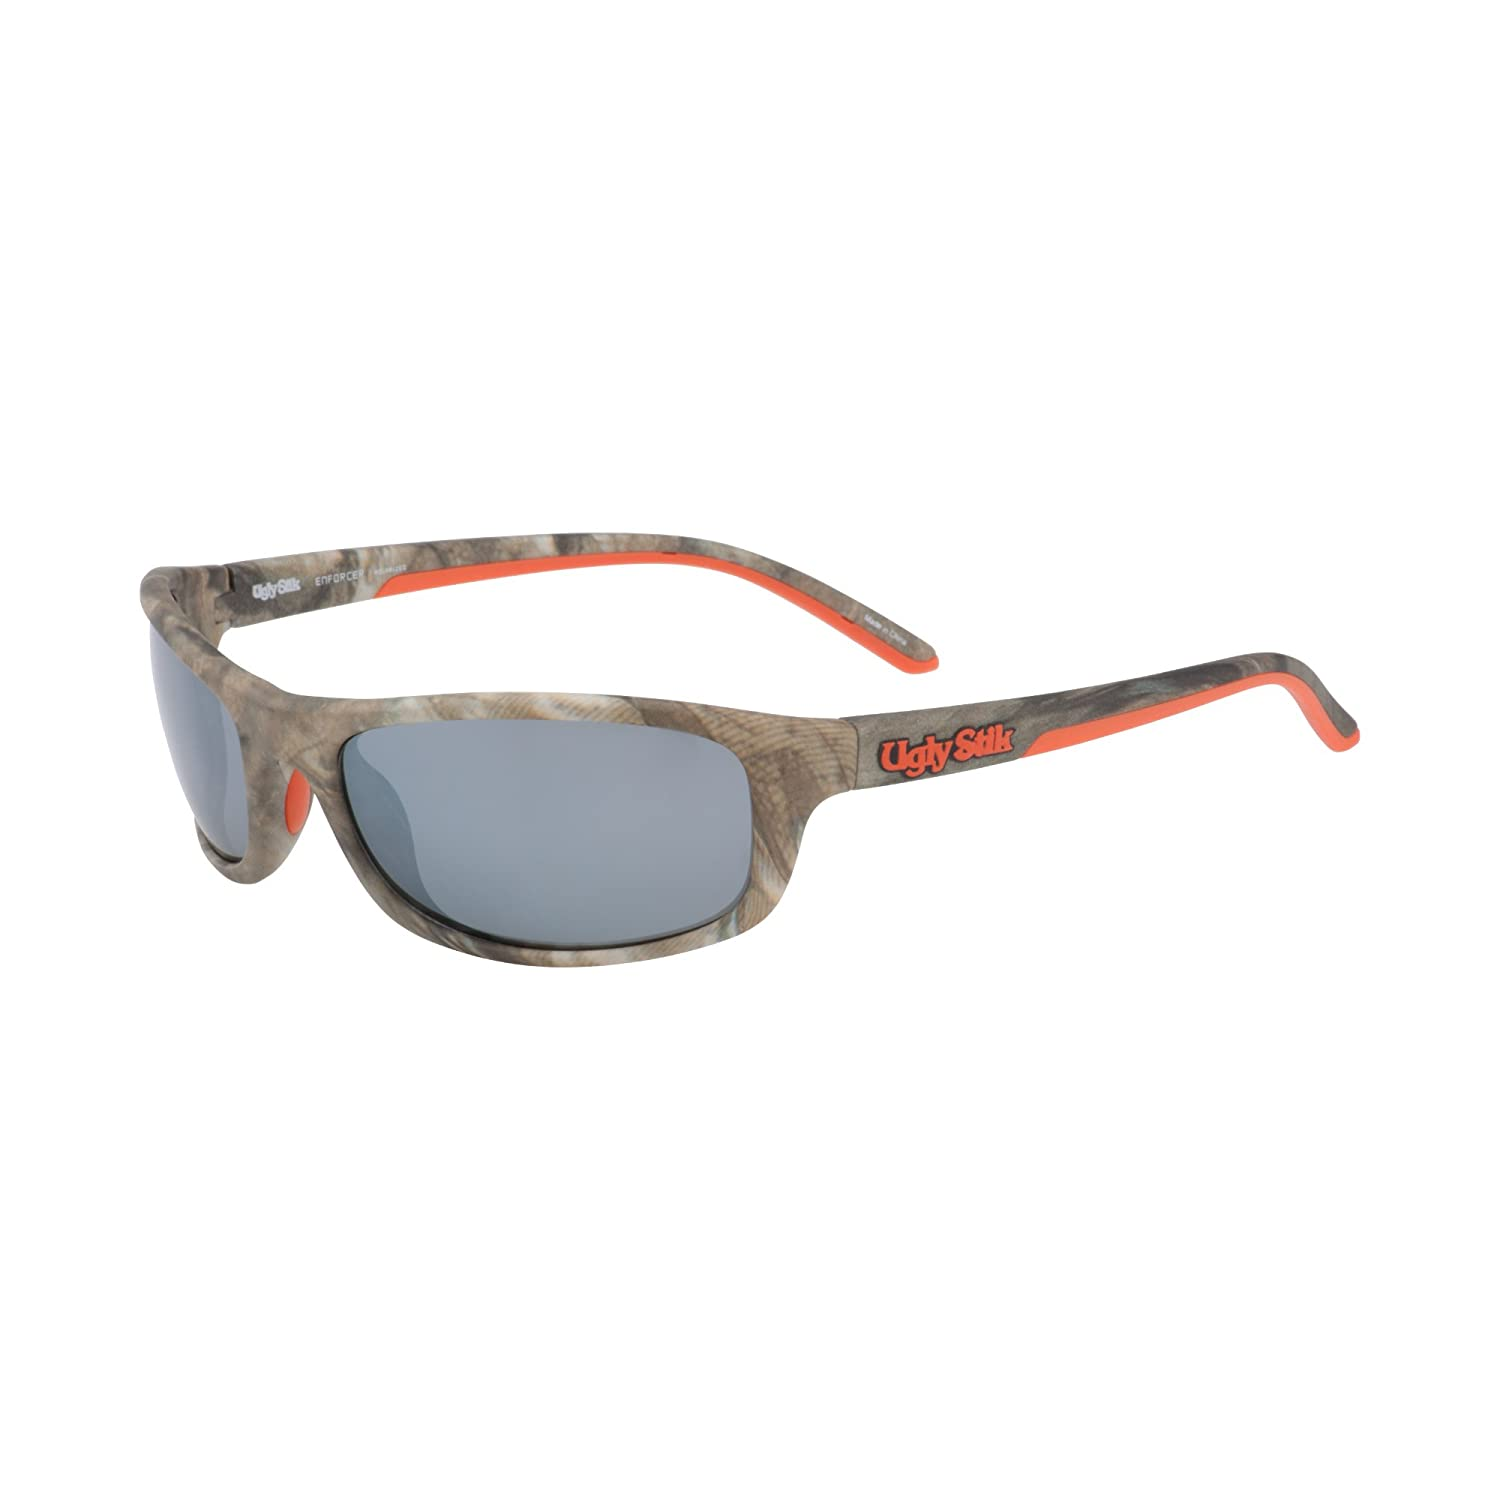 162b27d7fa Amazon.com   Ugly Stik Enforcer Sunglasses   Sports   Outdoors